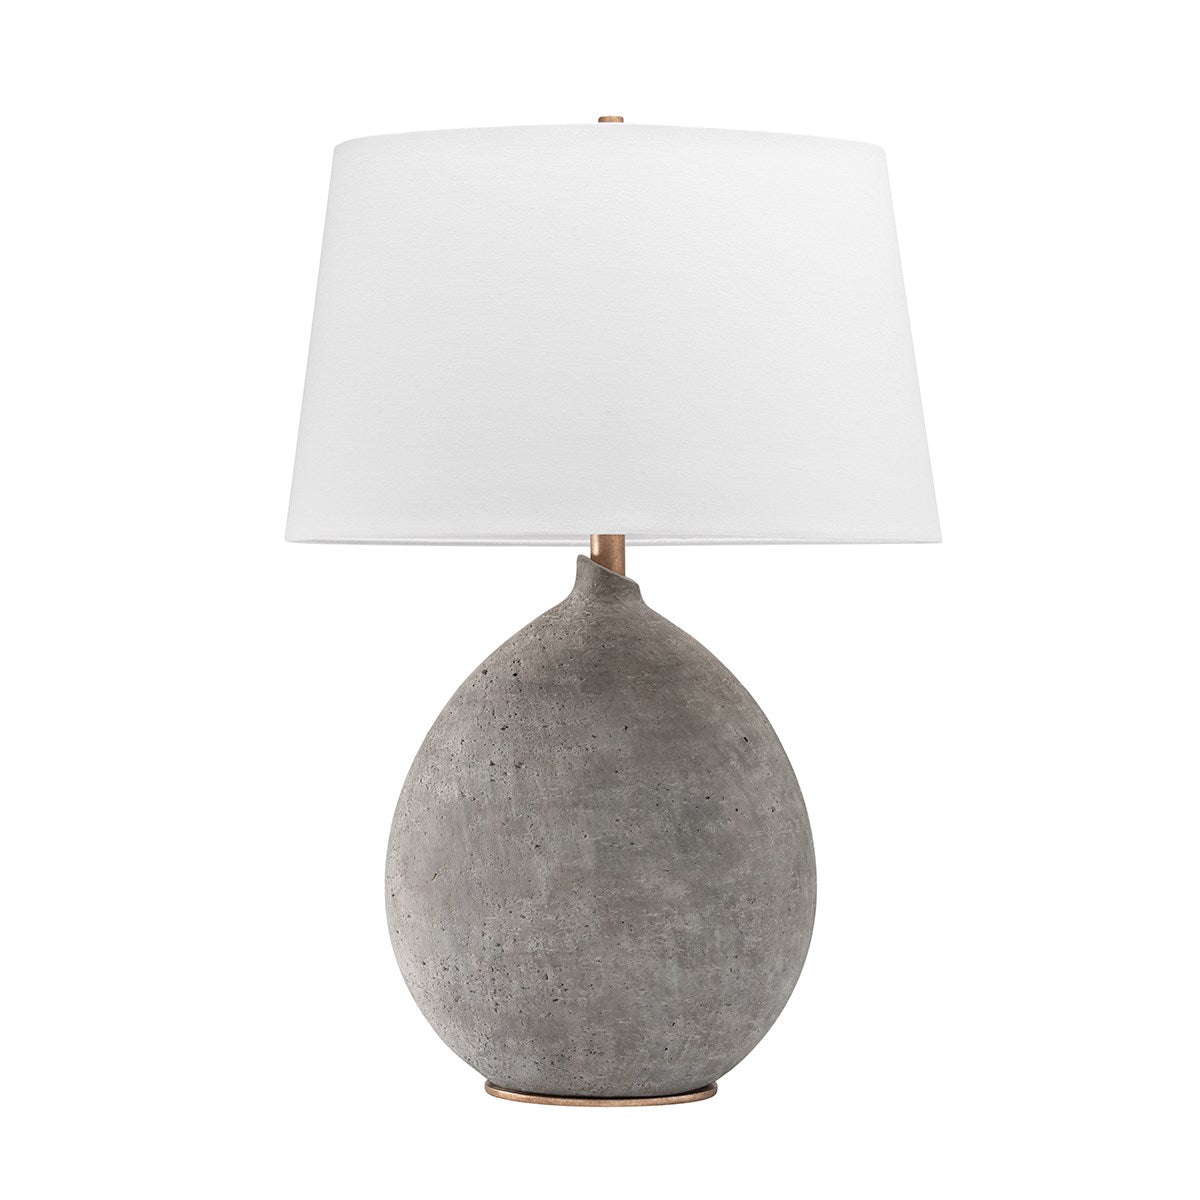 Denali Table Lamp